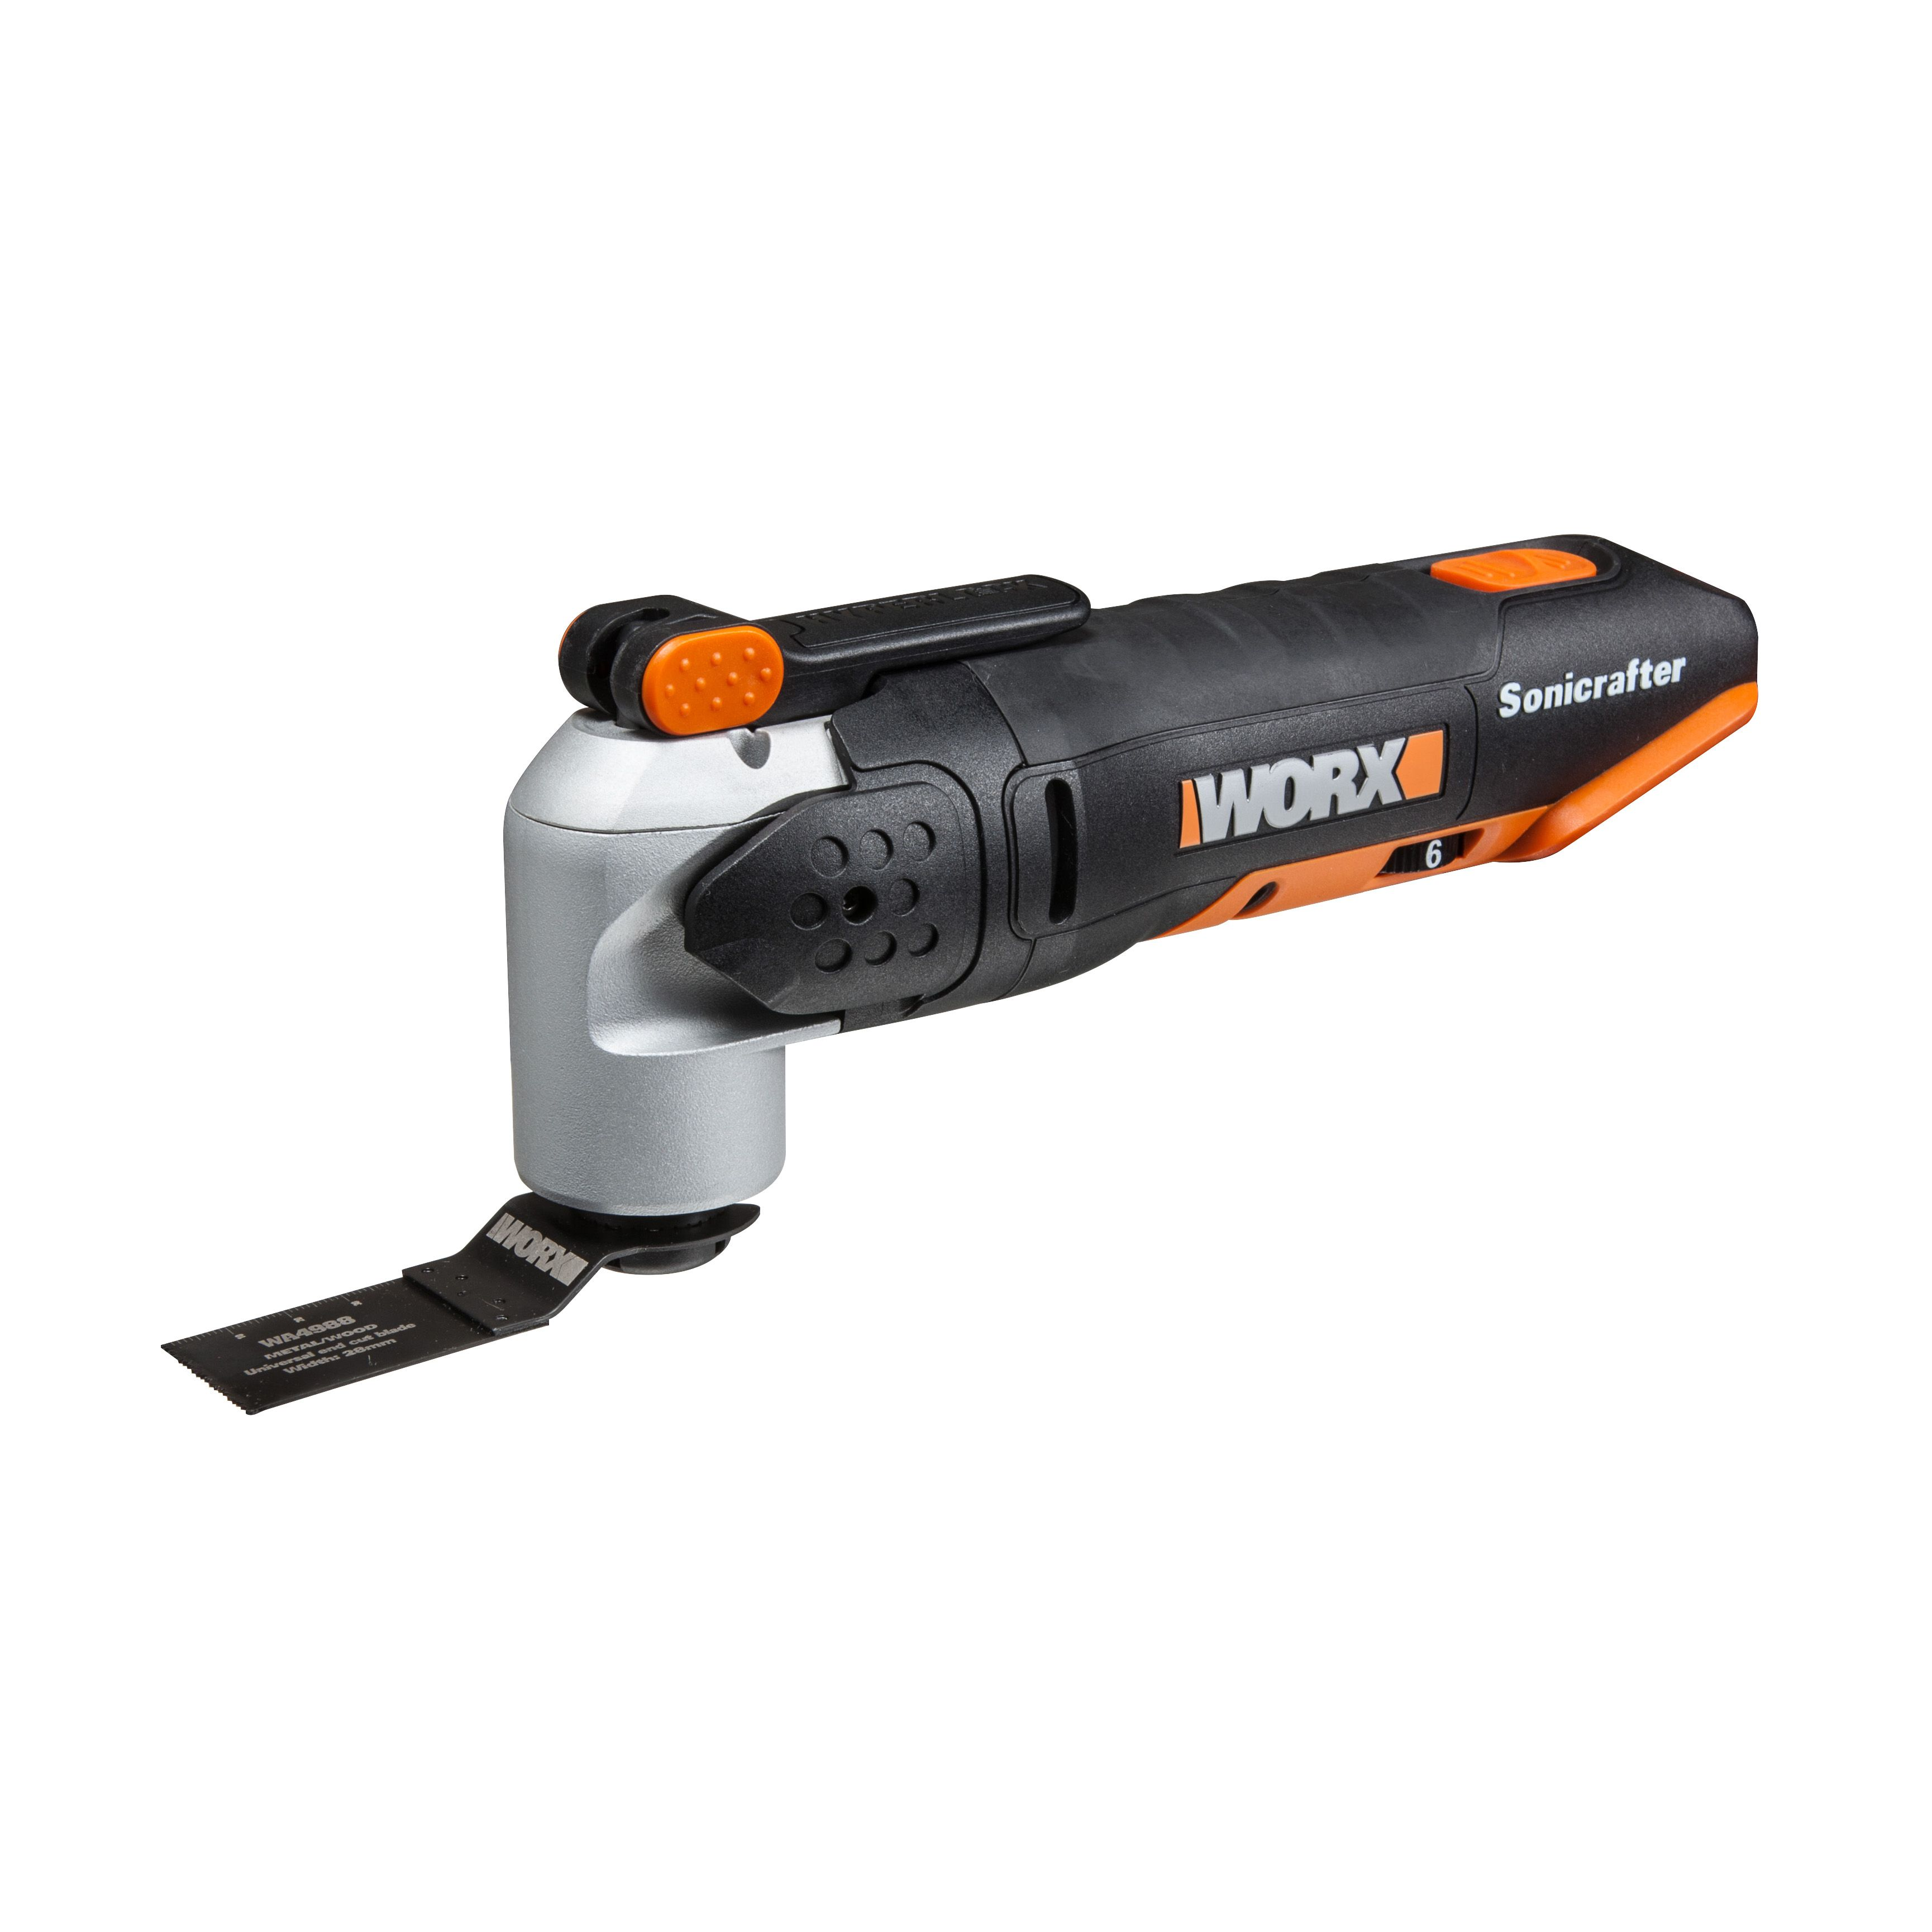 worx powershare 20v cordless sonicrafter multi tool wx678 9 bare departments tradepoint. Black Bedroom Furniture Sets. Home Design Ideas